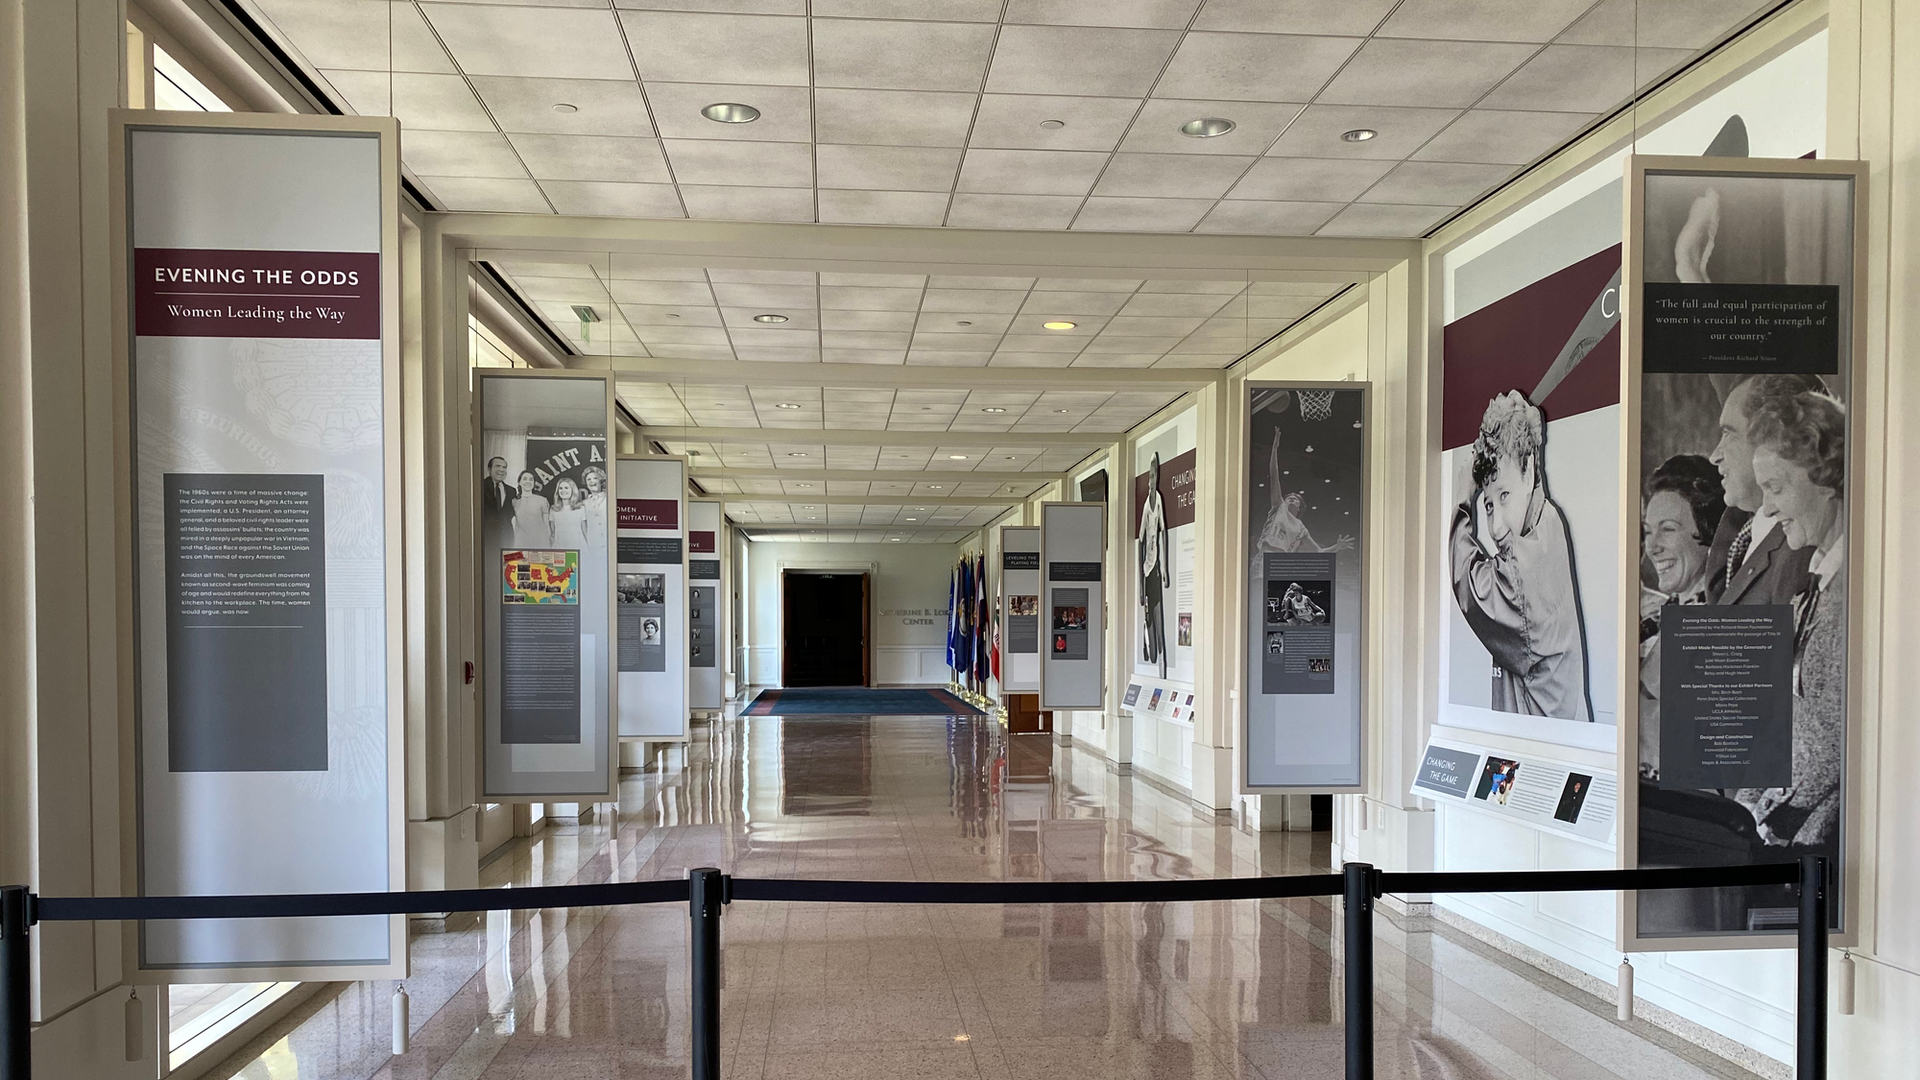 complete title ix museum exhibit at the richard nixon presidential library